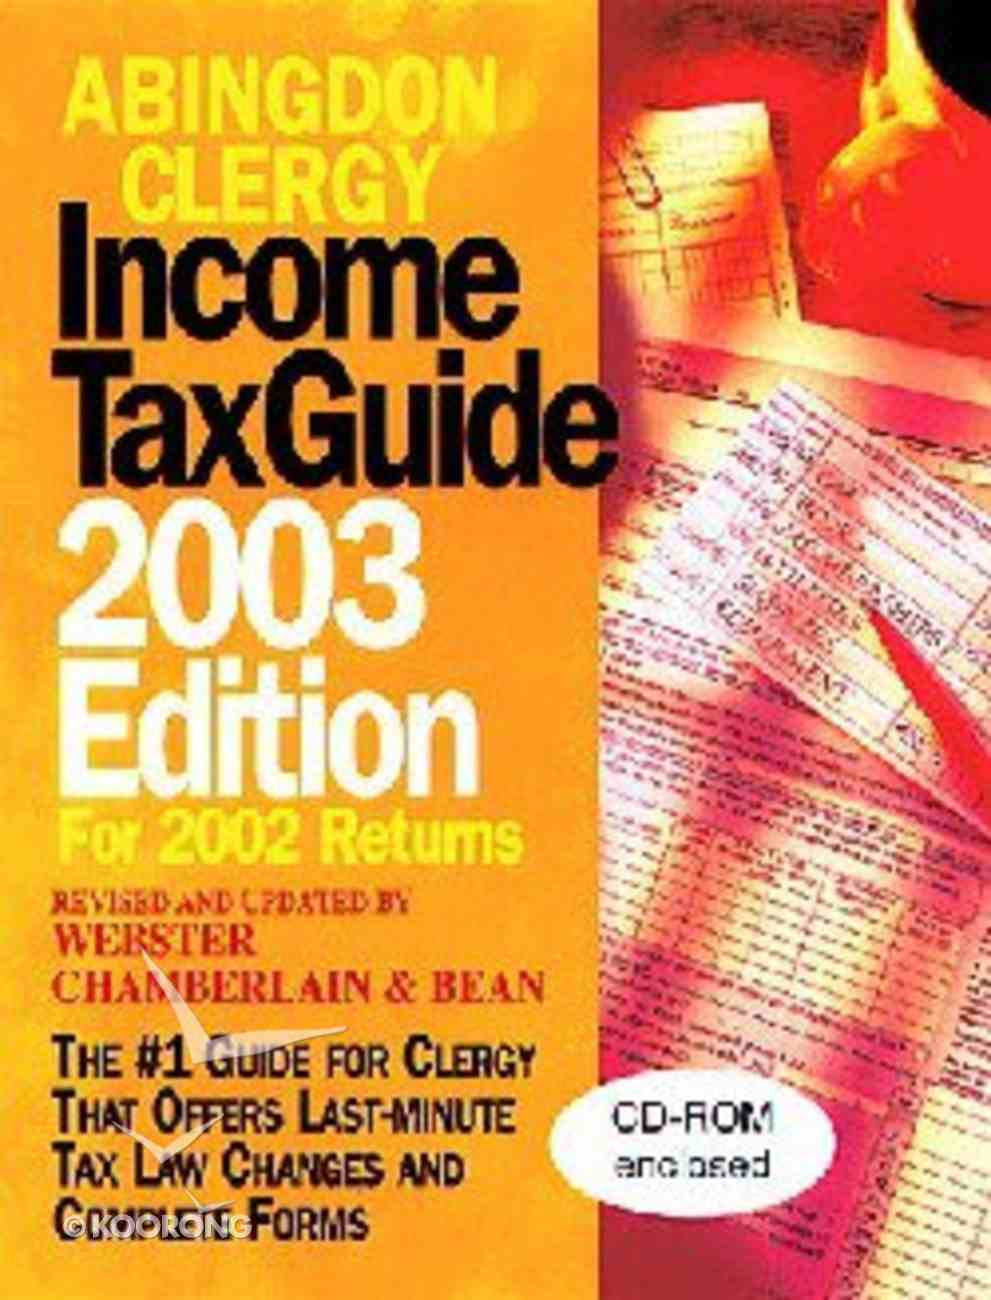 Abingdon Clergy Income Tax Guide (2003 Edition) Paperback